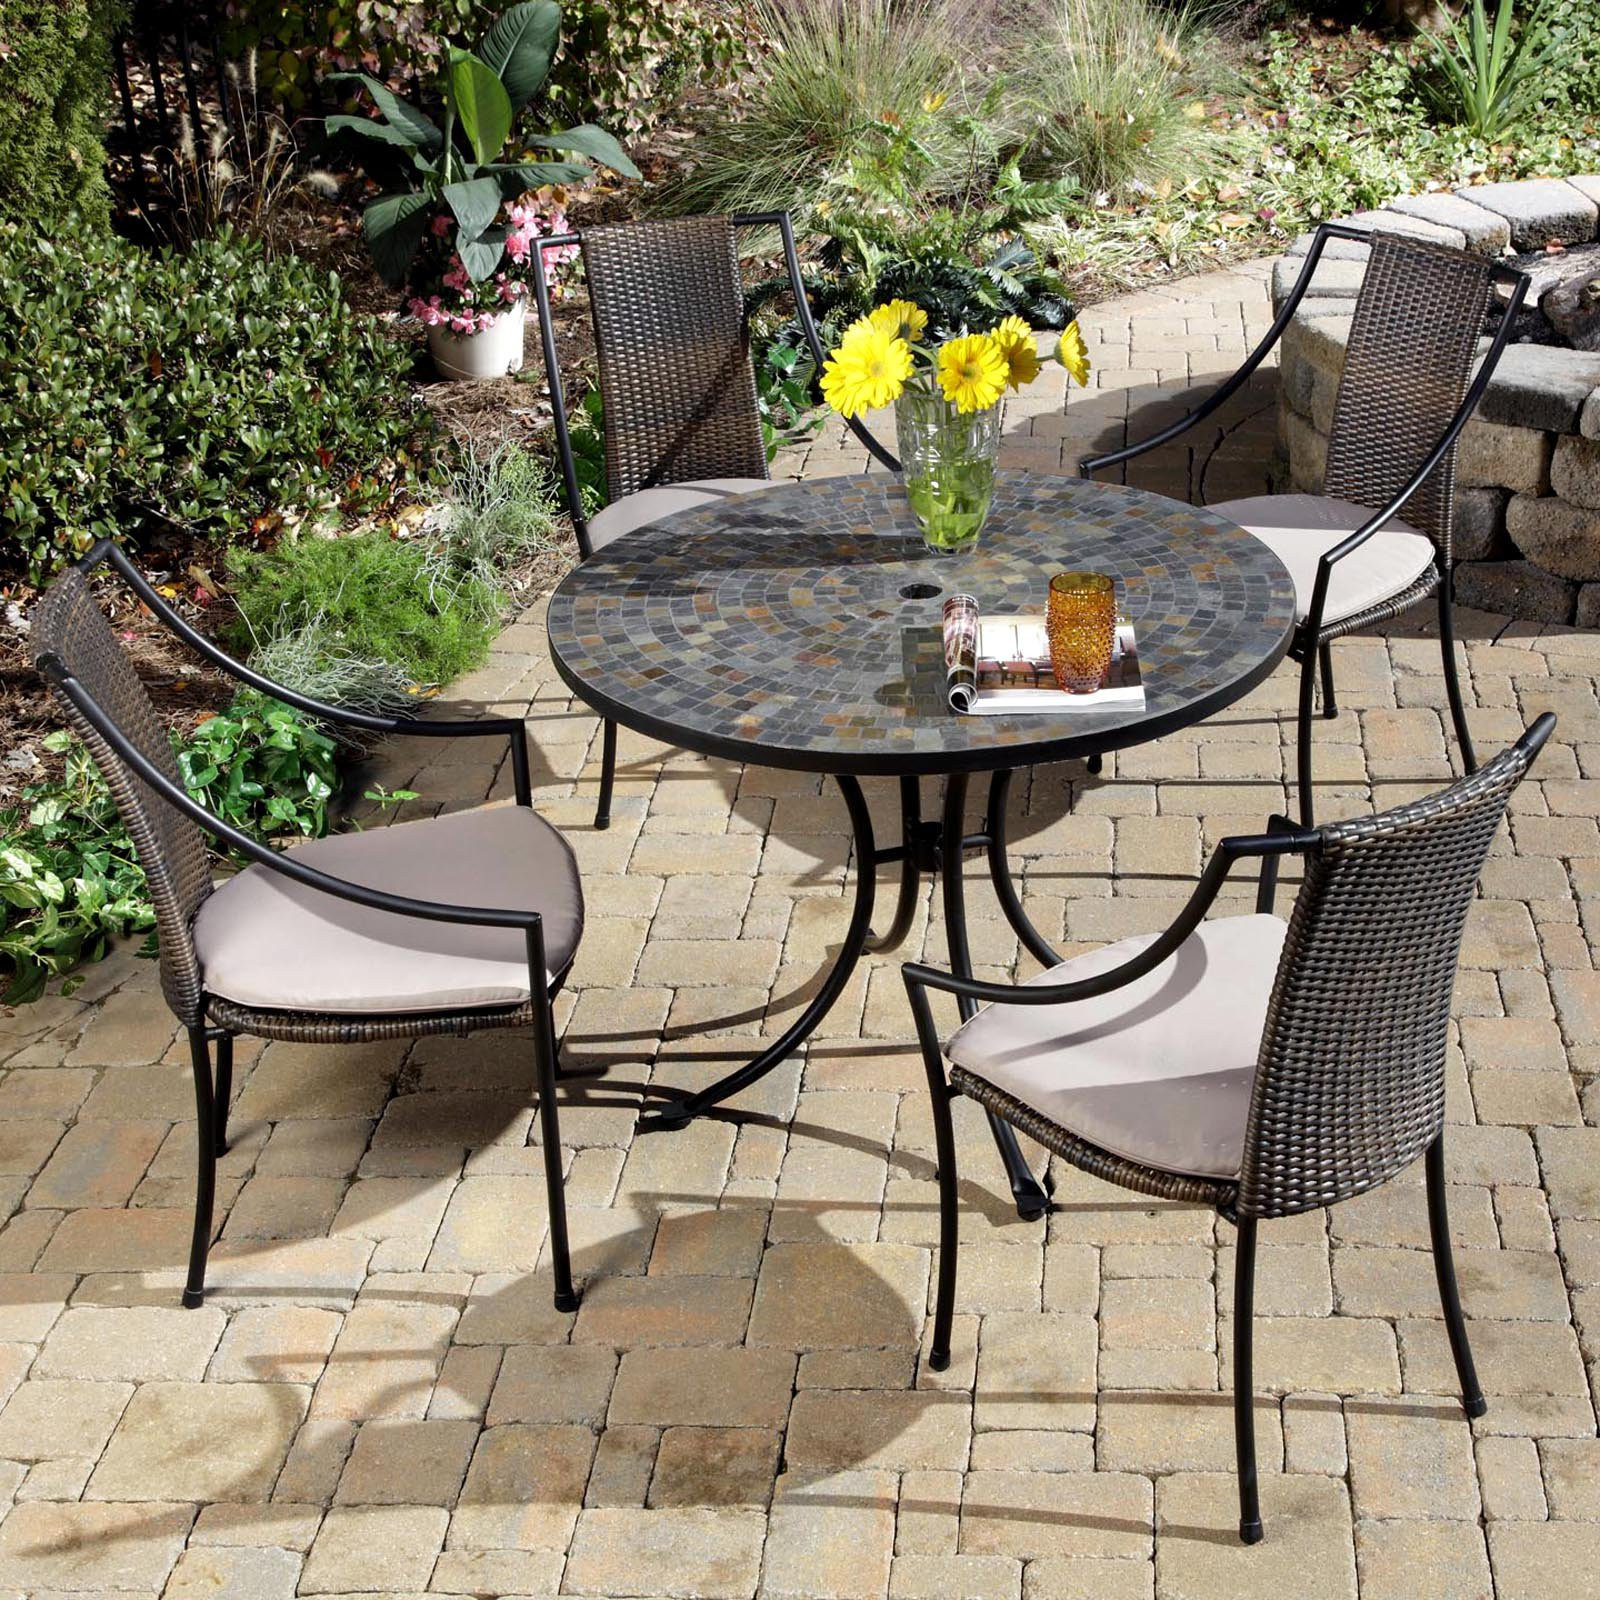 Best ideas about Outdoor Patio Dining Sets . Save or Pin Home Styles Stone Harbor Mosaic Outdoor Dining Set Patio Now.